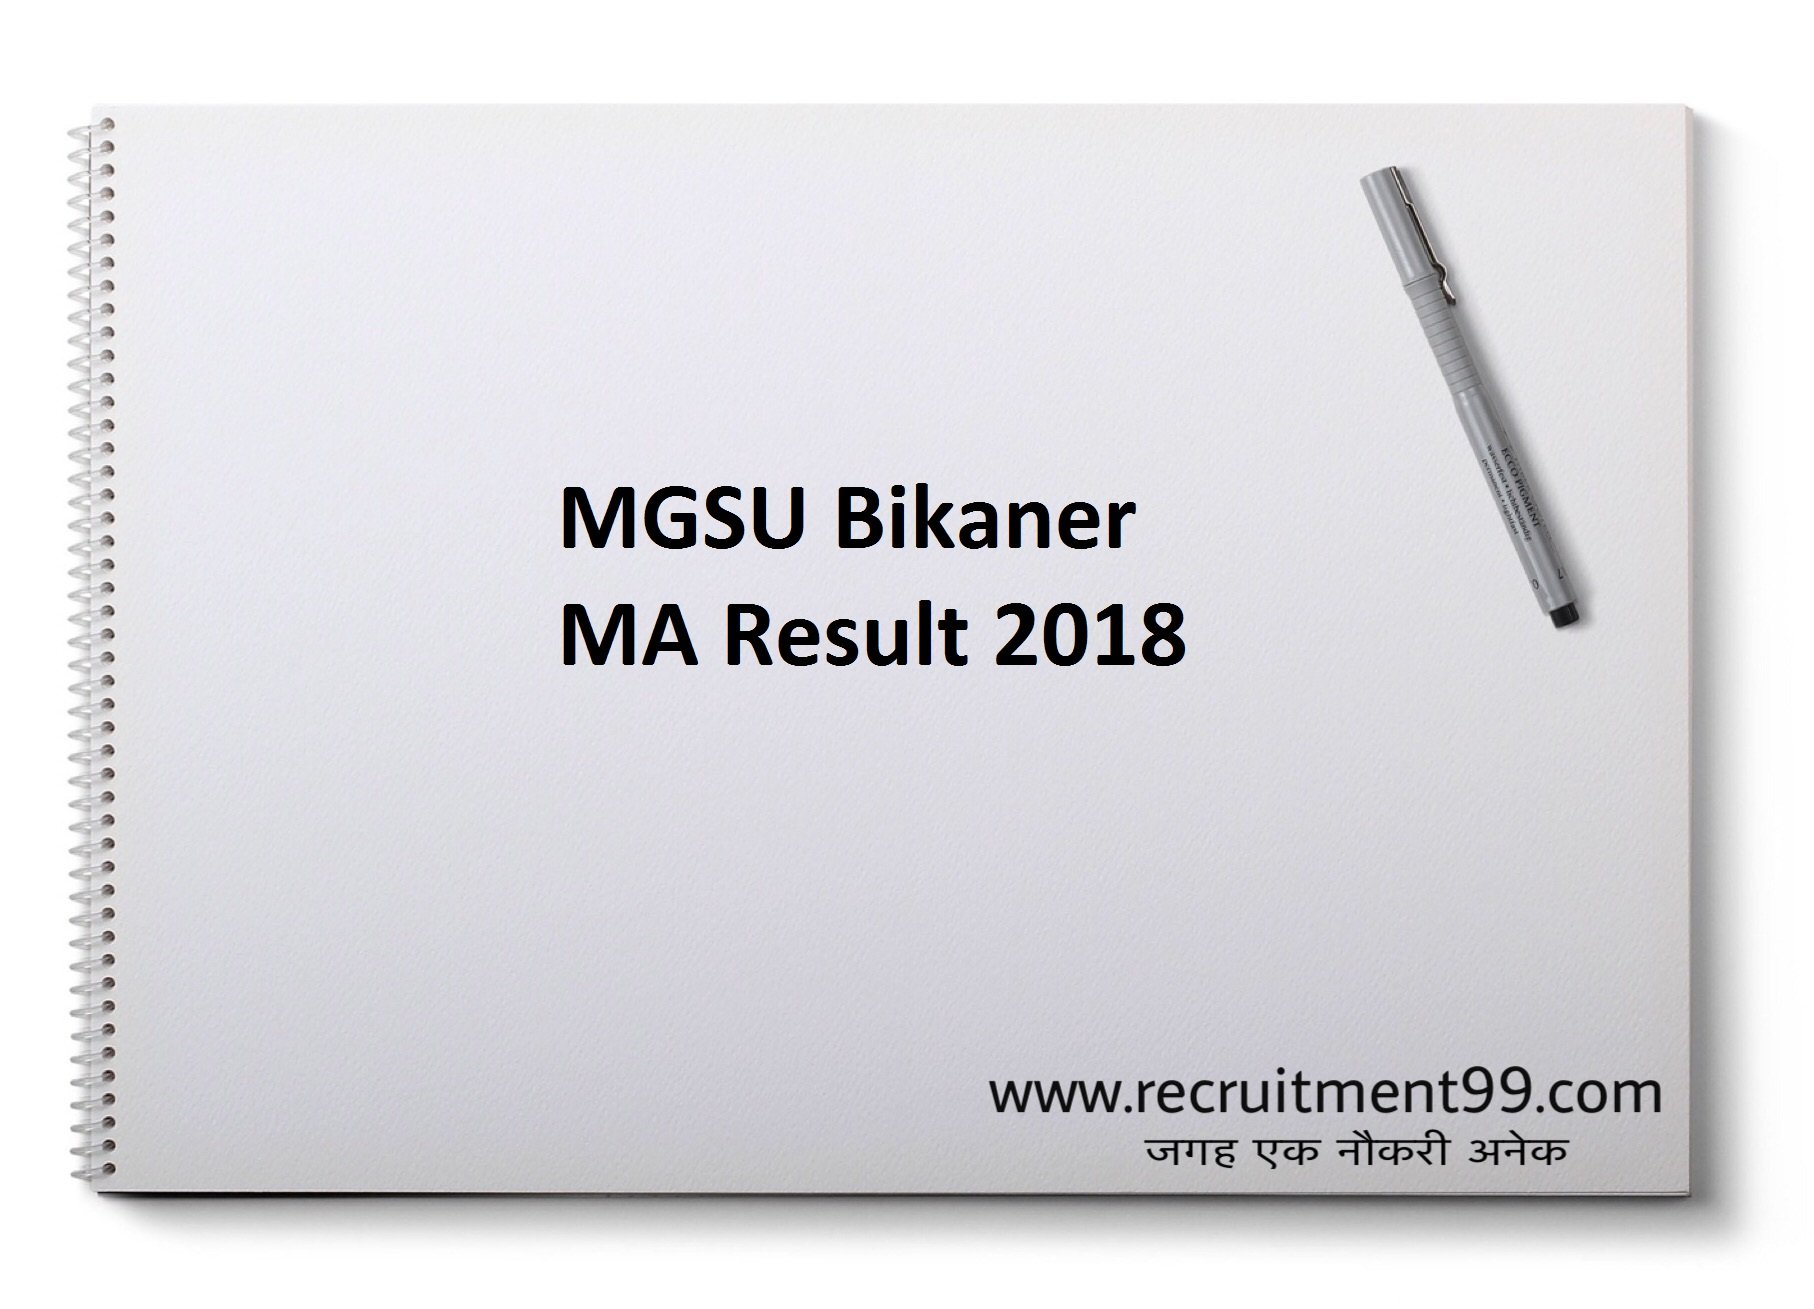 MGSU Bikaner MA English Result 2018